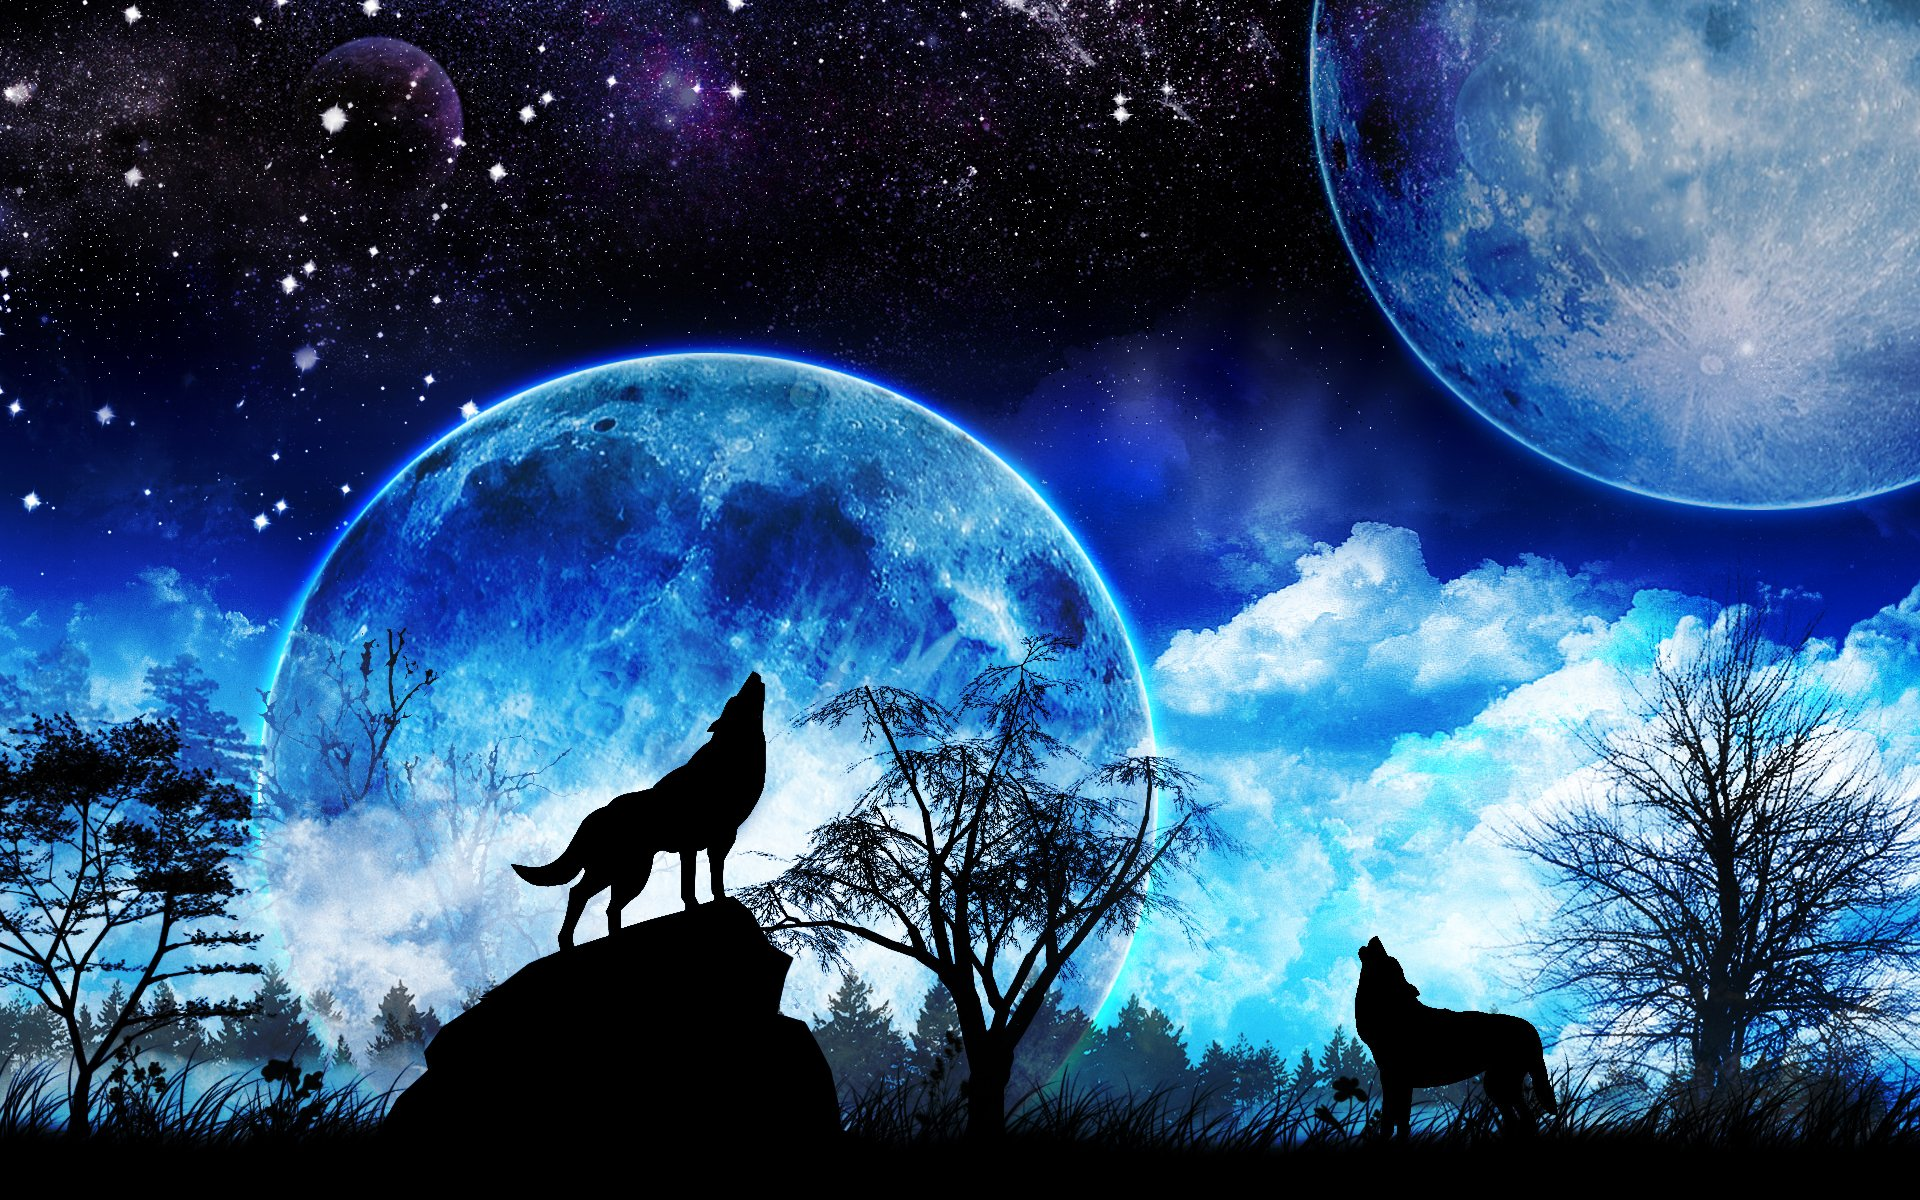 [68+] Howling Wolf Wallpaper On WallpaperSafari